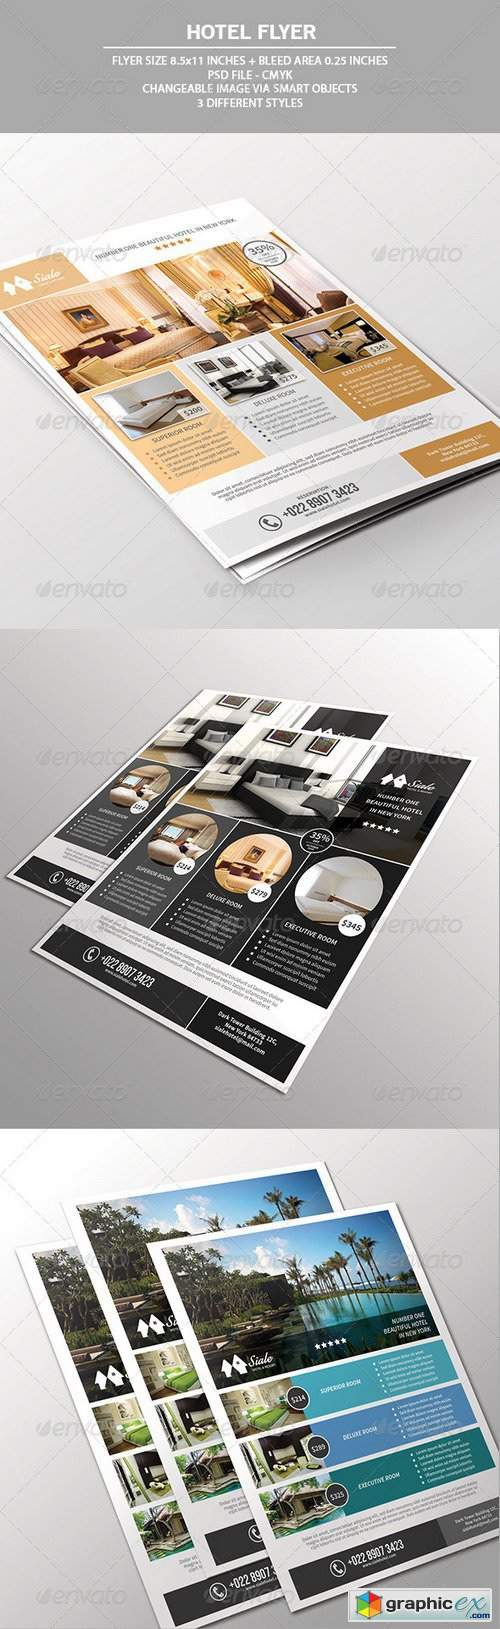 Hotel Flyer Template 7528621